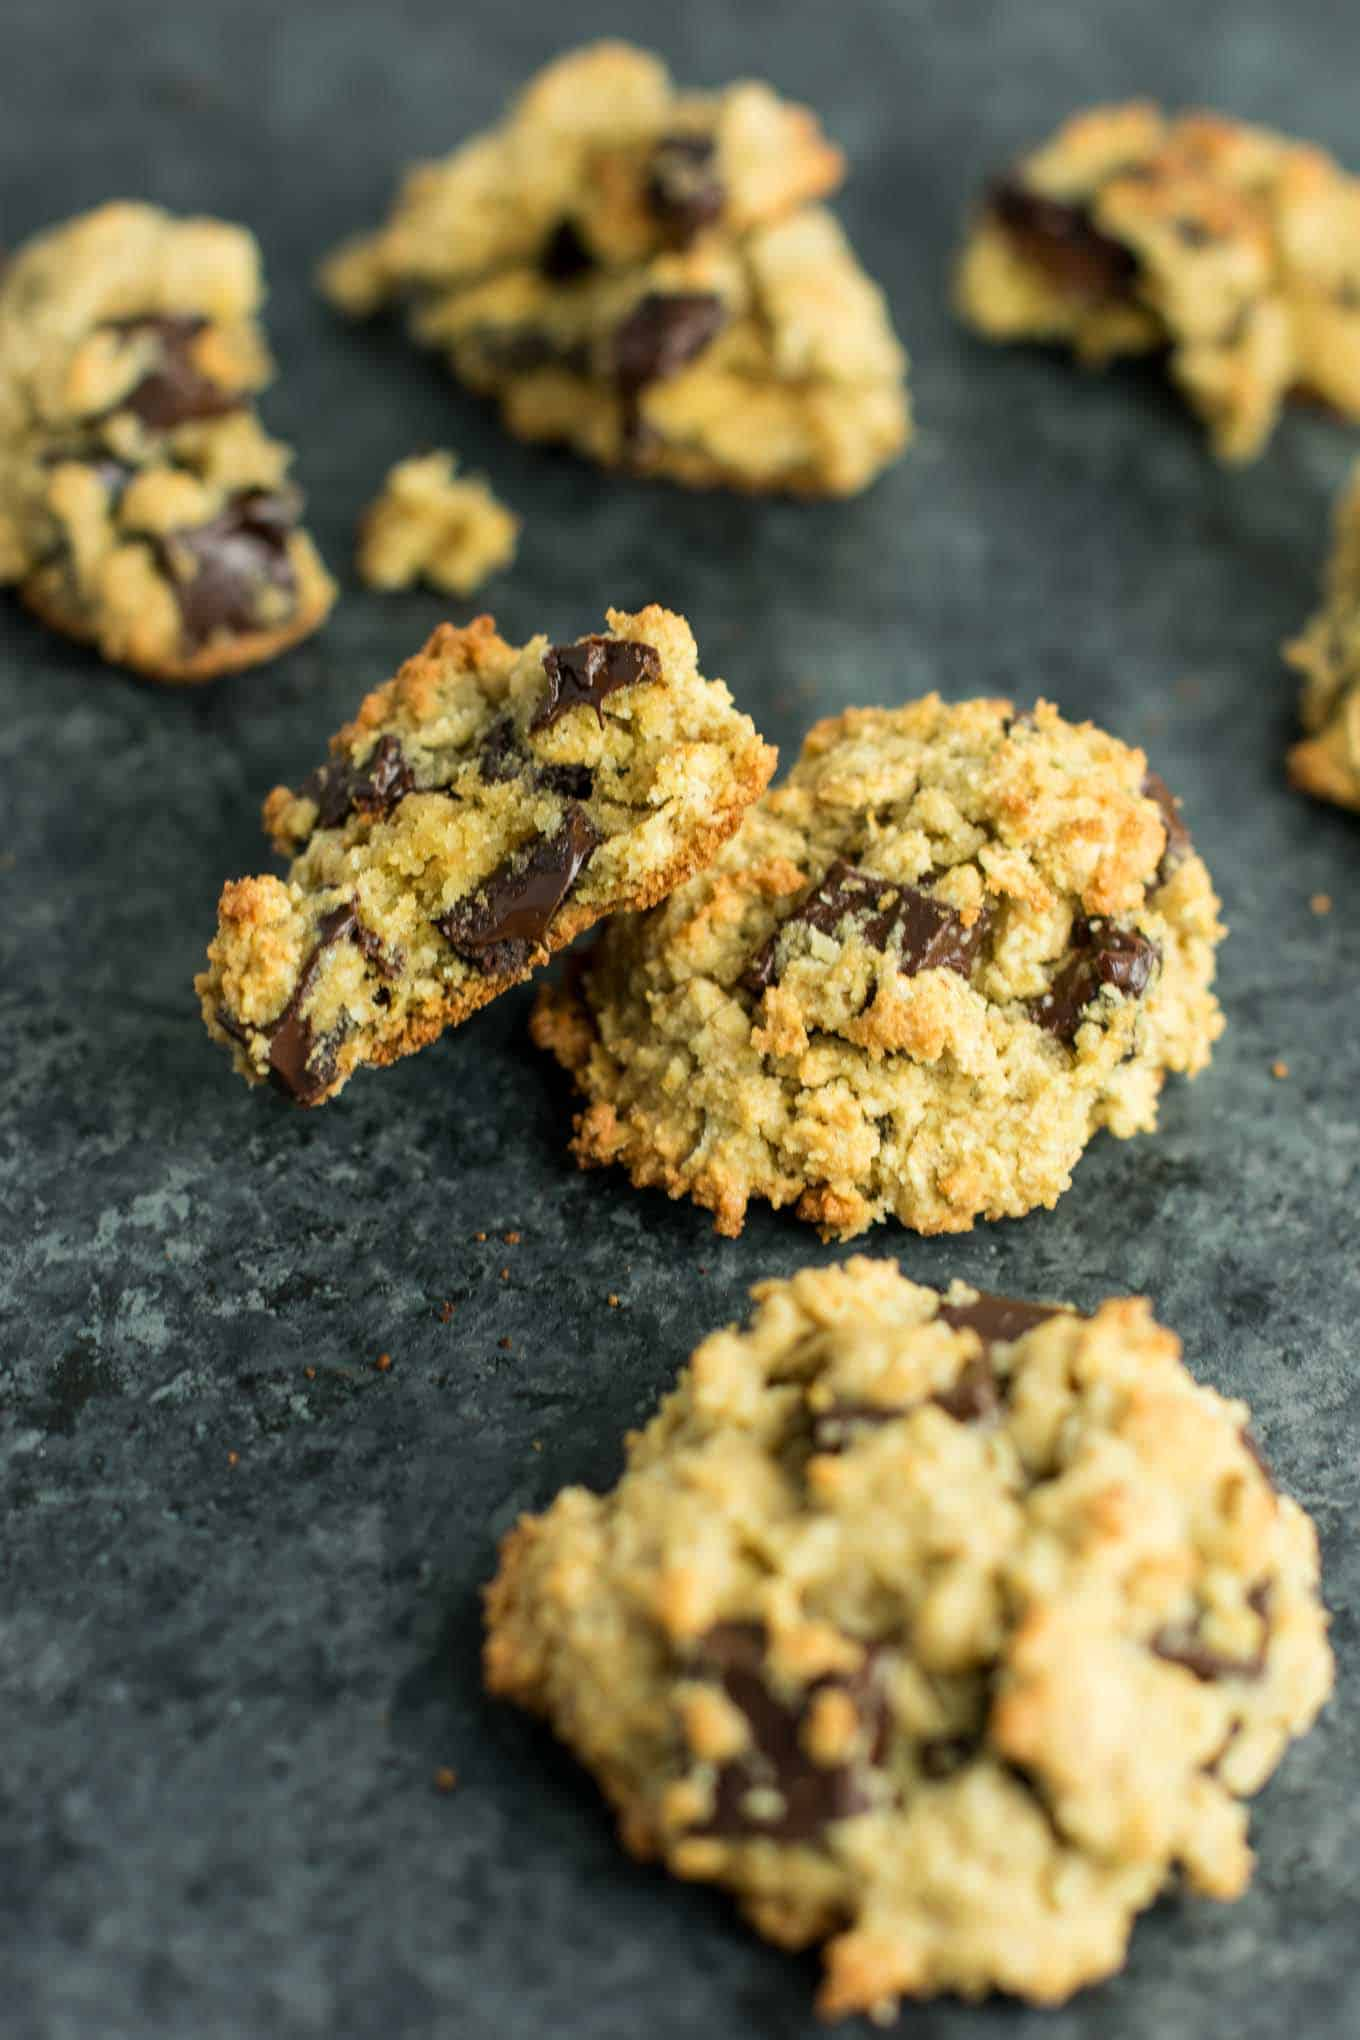 gluten free dessert recipes - Gluten Free Oatmeal Chocolate Chip Cookies recipe made with oat flour and coconut flour. An easy, healthy, and delicious cookie recipe made using easy to find and inexpensive gluten free flours. #glutenfree #oatmealchocolatechip #healthy #cookies